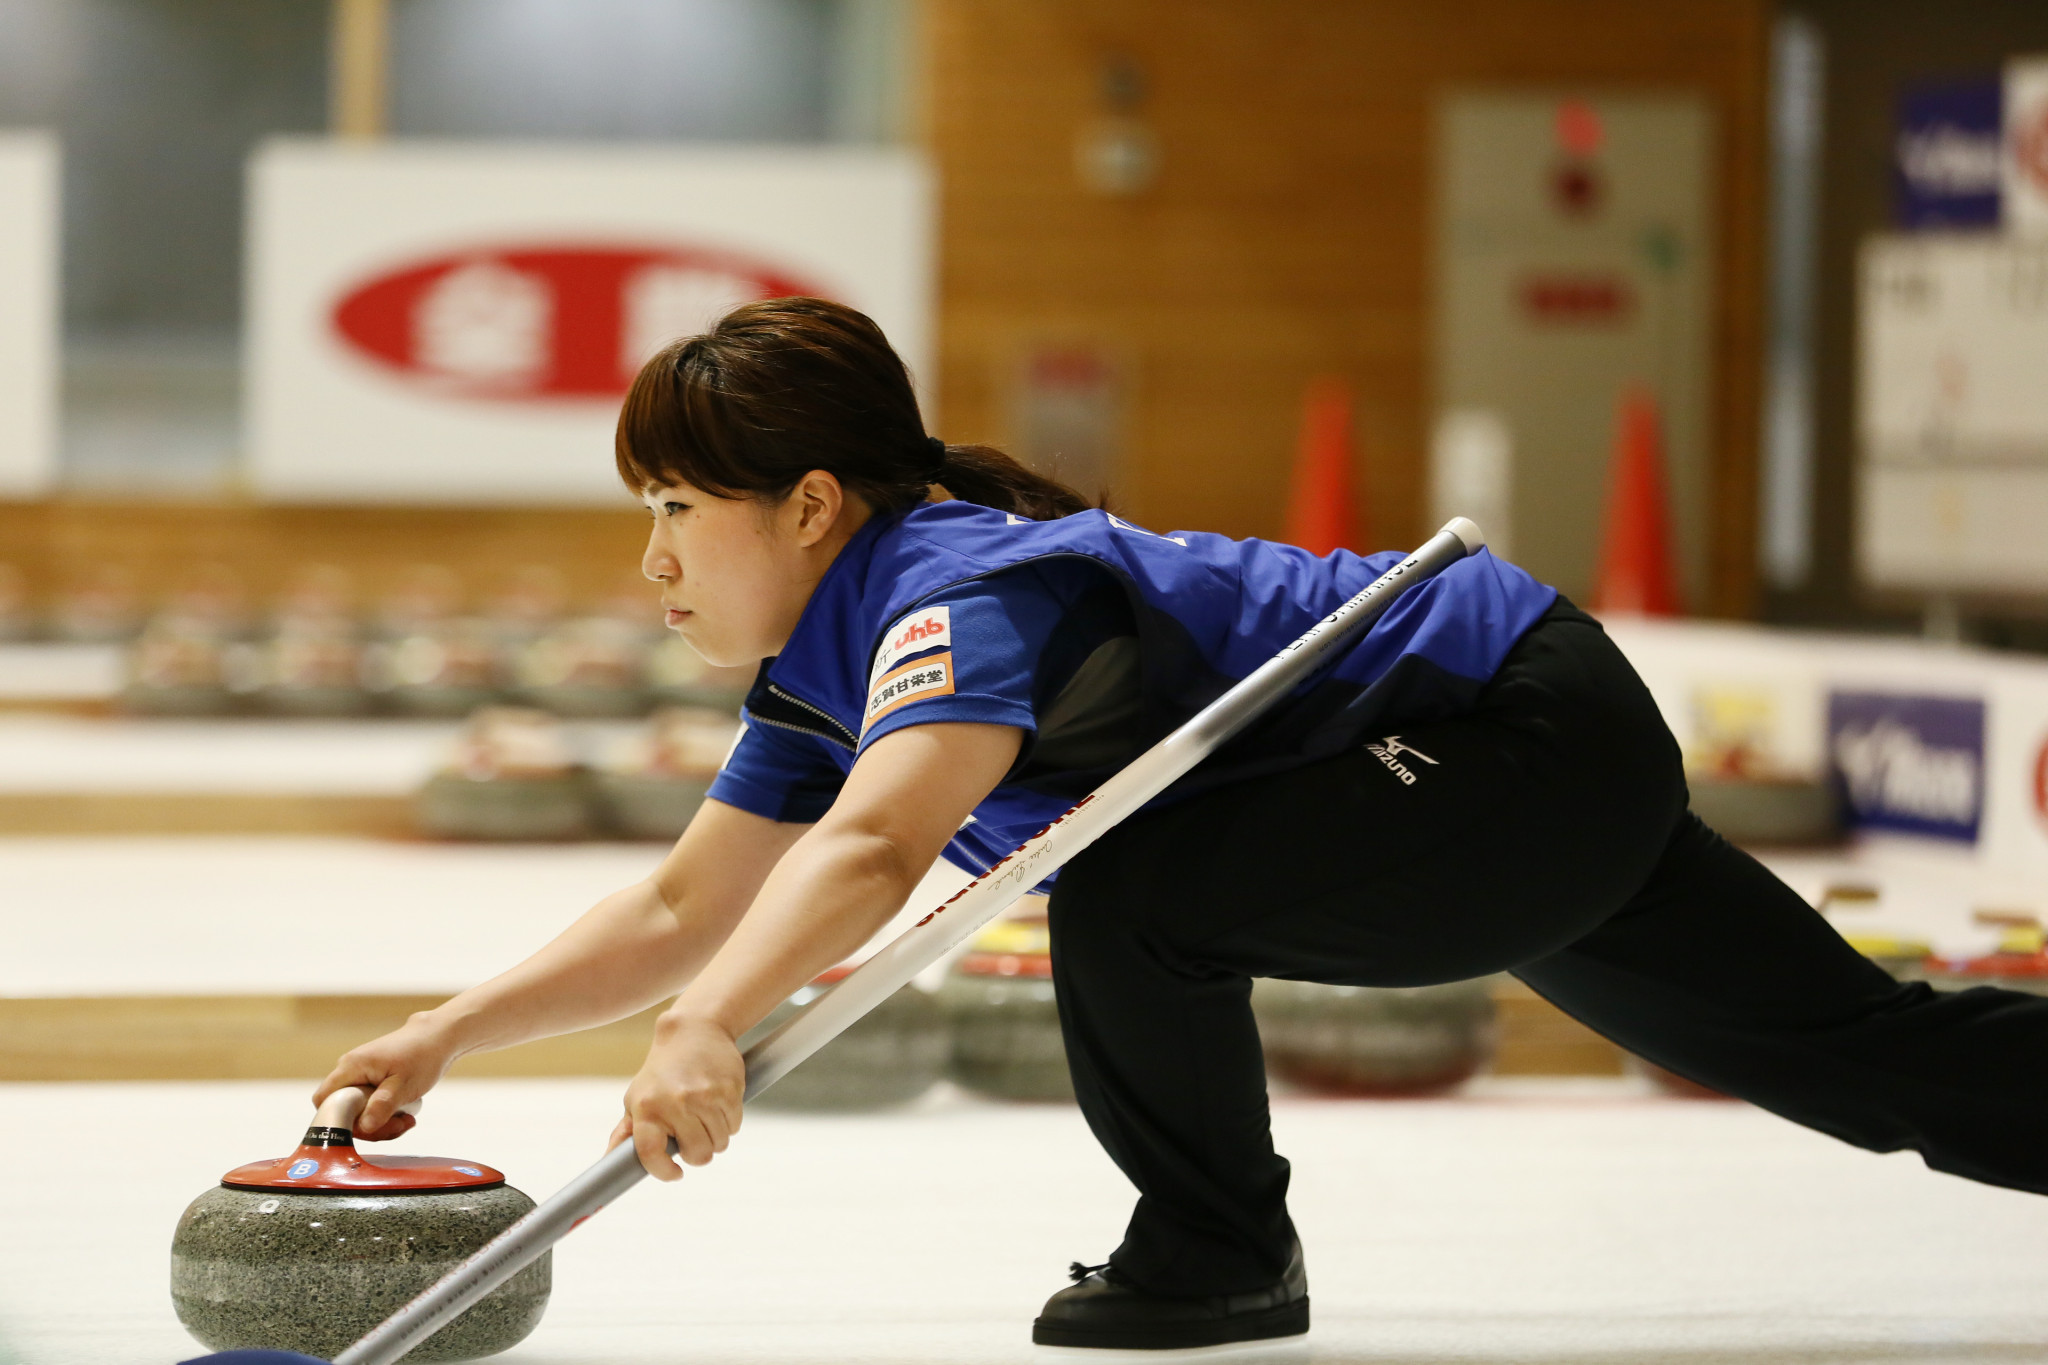 LS Kitami to represent Japan in women's curling at Pyeongchang 2018 Winter Olympics